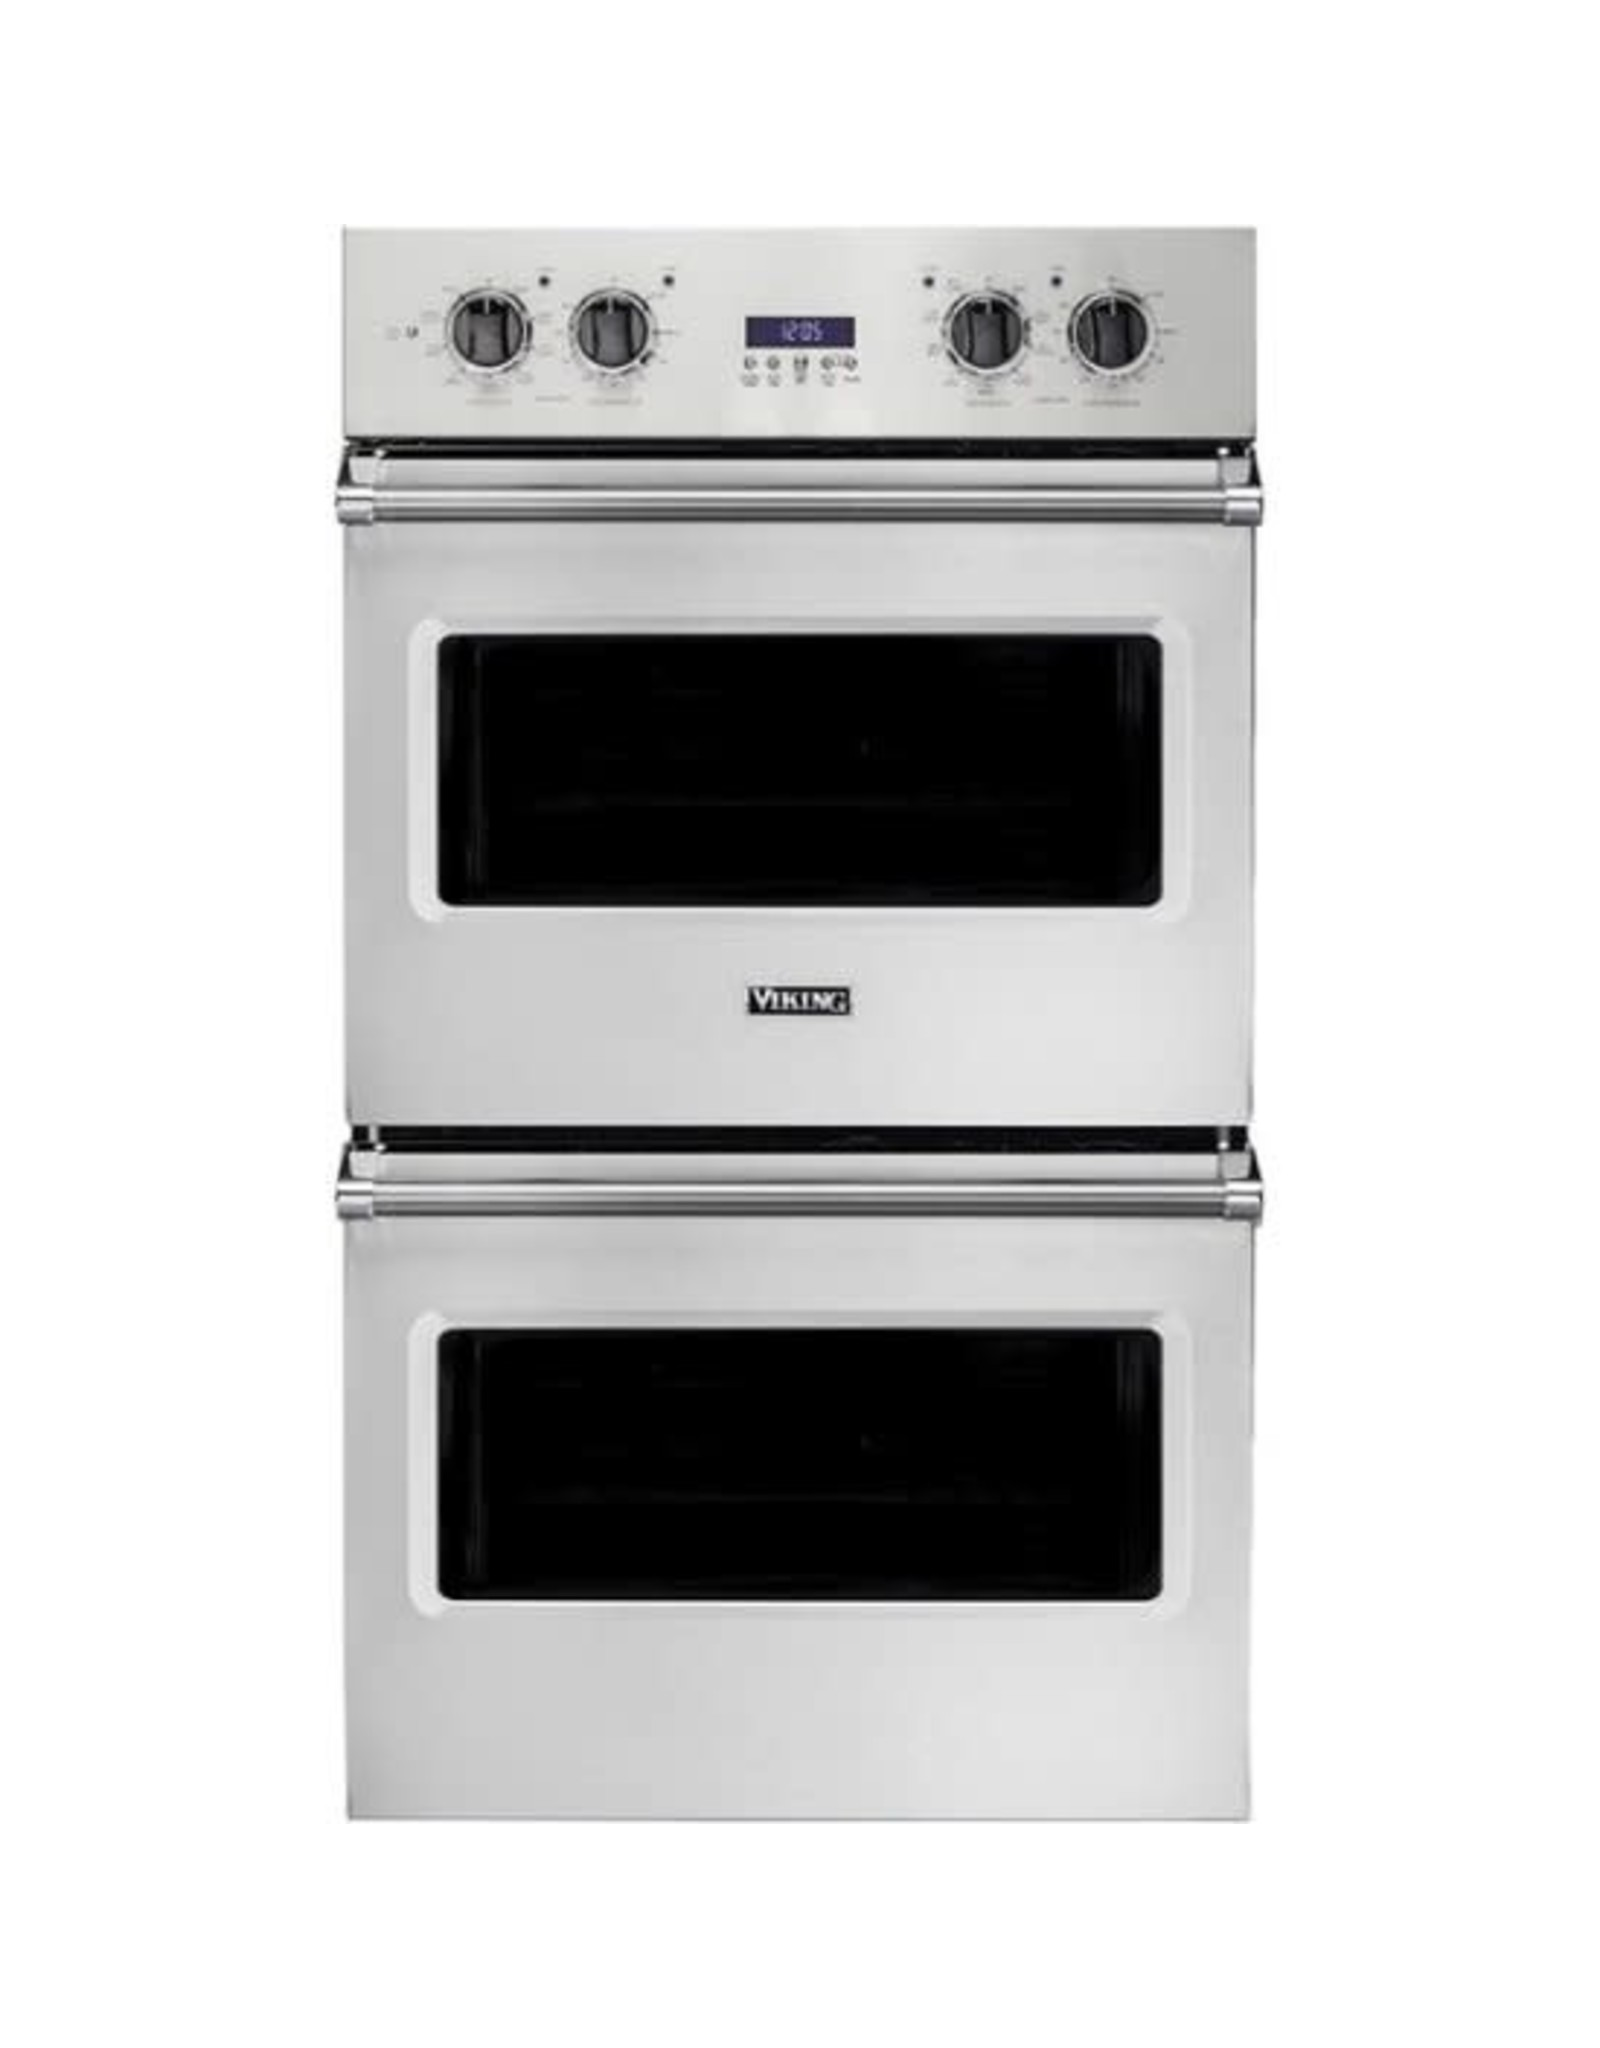 viking VDOE130SS 5 Series 30 Inch 9.4 cu. ft. Total Capacity Electric Double Wall Oven with Convection, Delay Bake, Self-Cleaning, Vari-Speed Dual Flow Convection, BlackChrome Knobs, TruGlide Oven Racks, Rapid Ready Preheat System in Stainless Steel